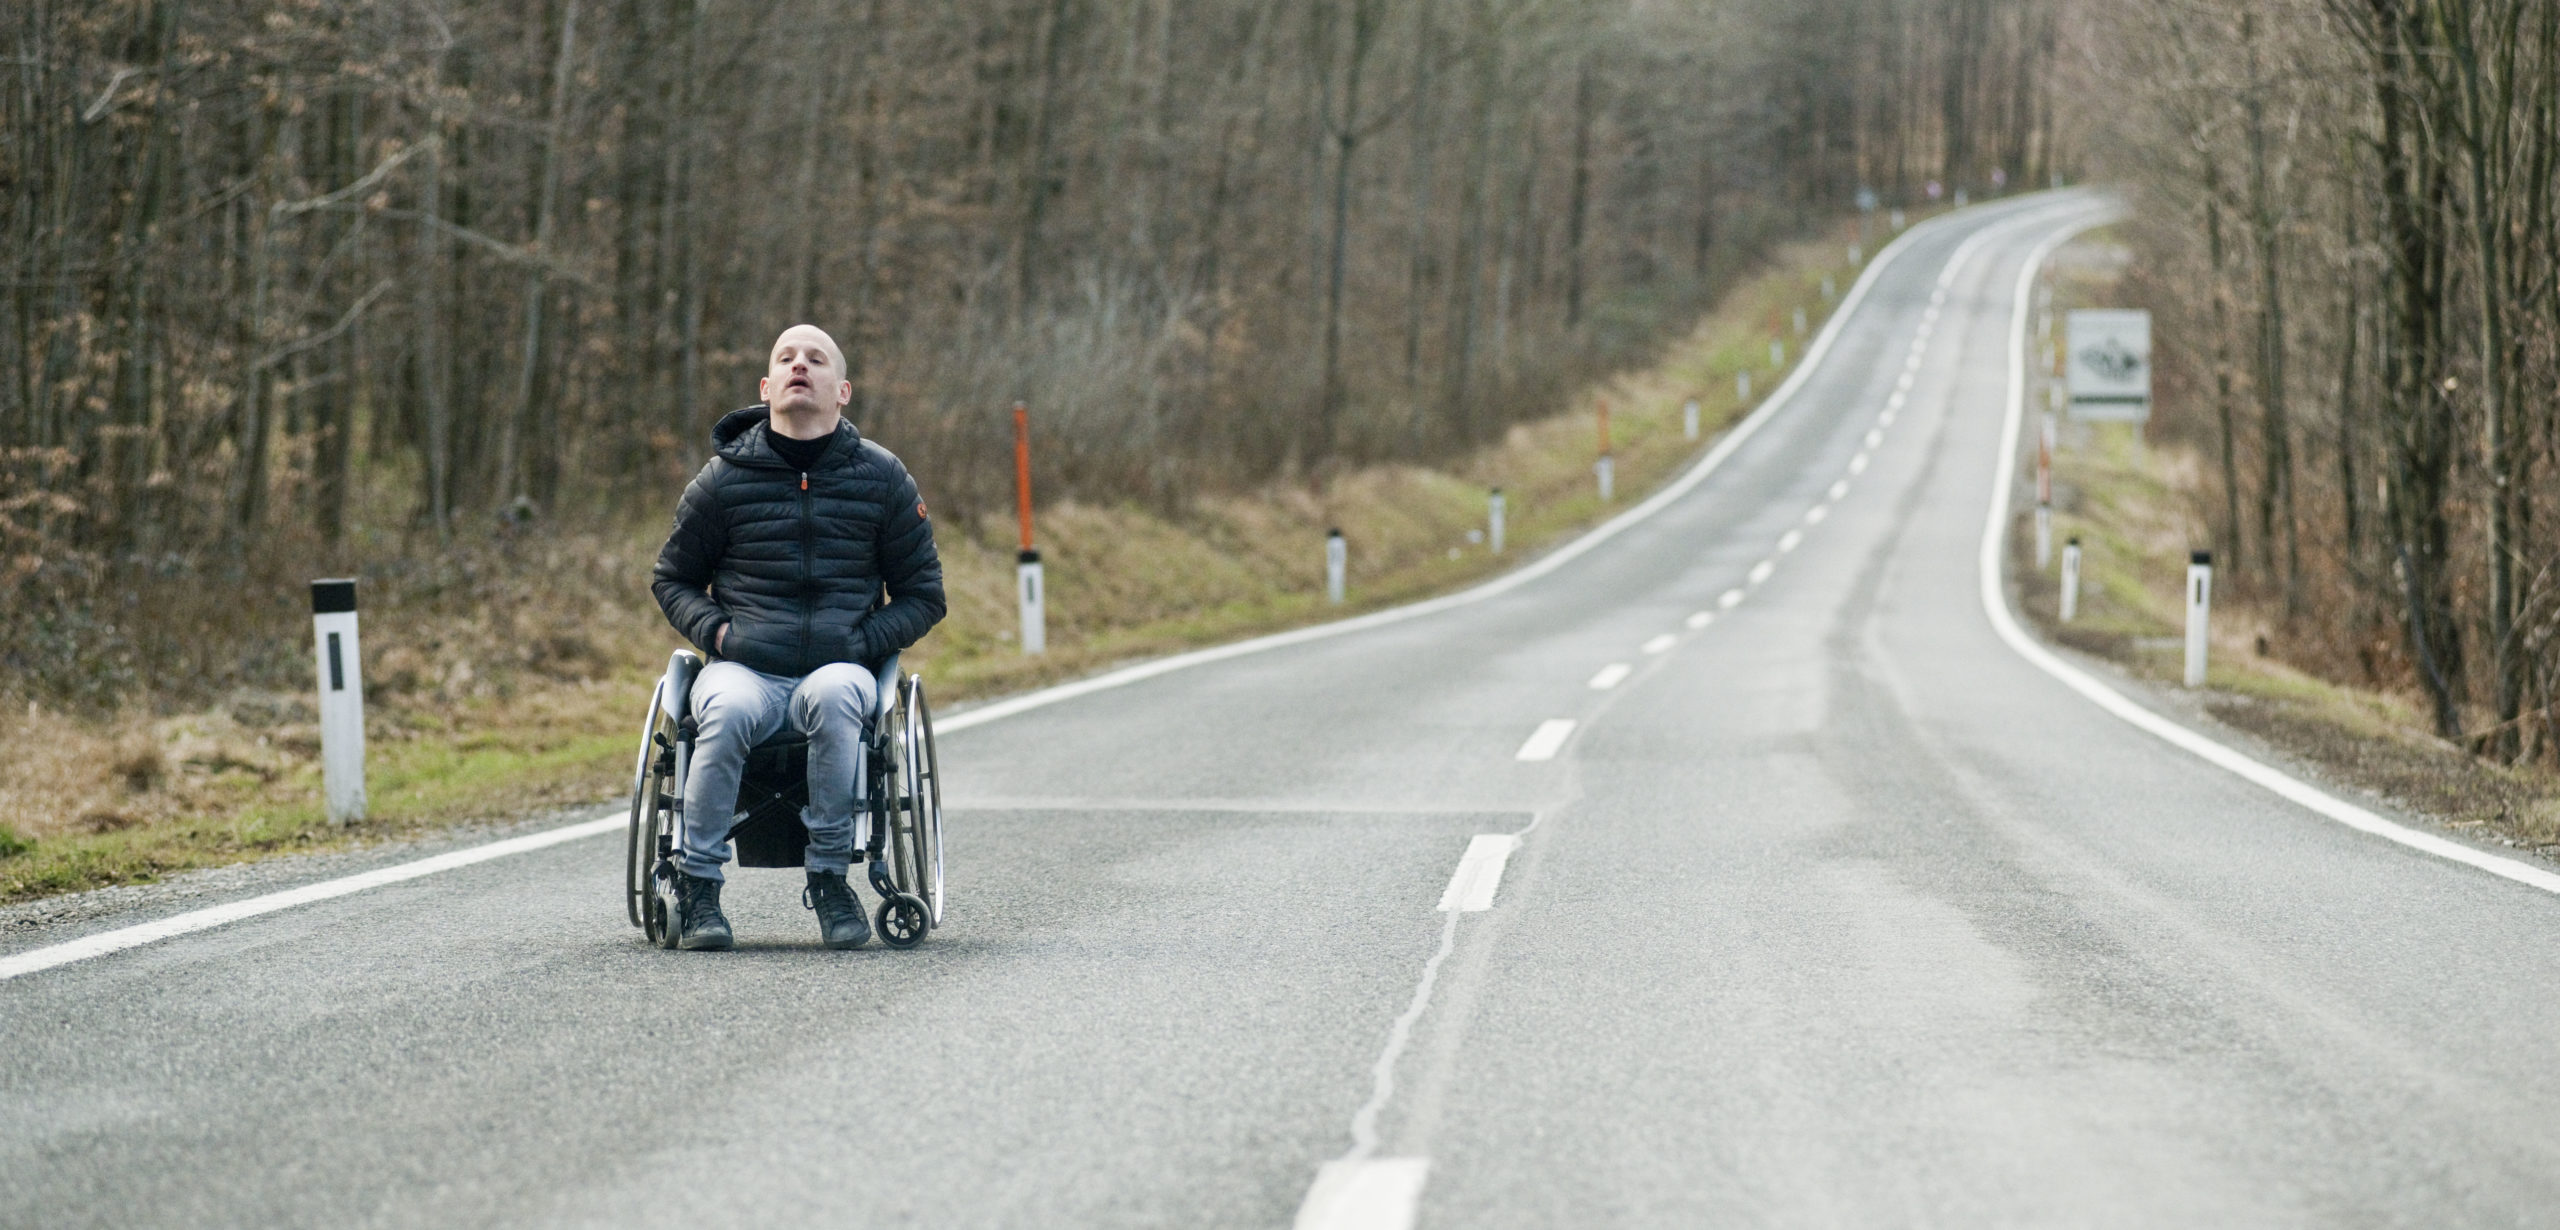 Man in wheelchair in the middle of an empty road